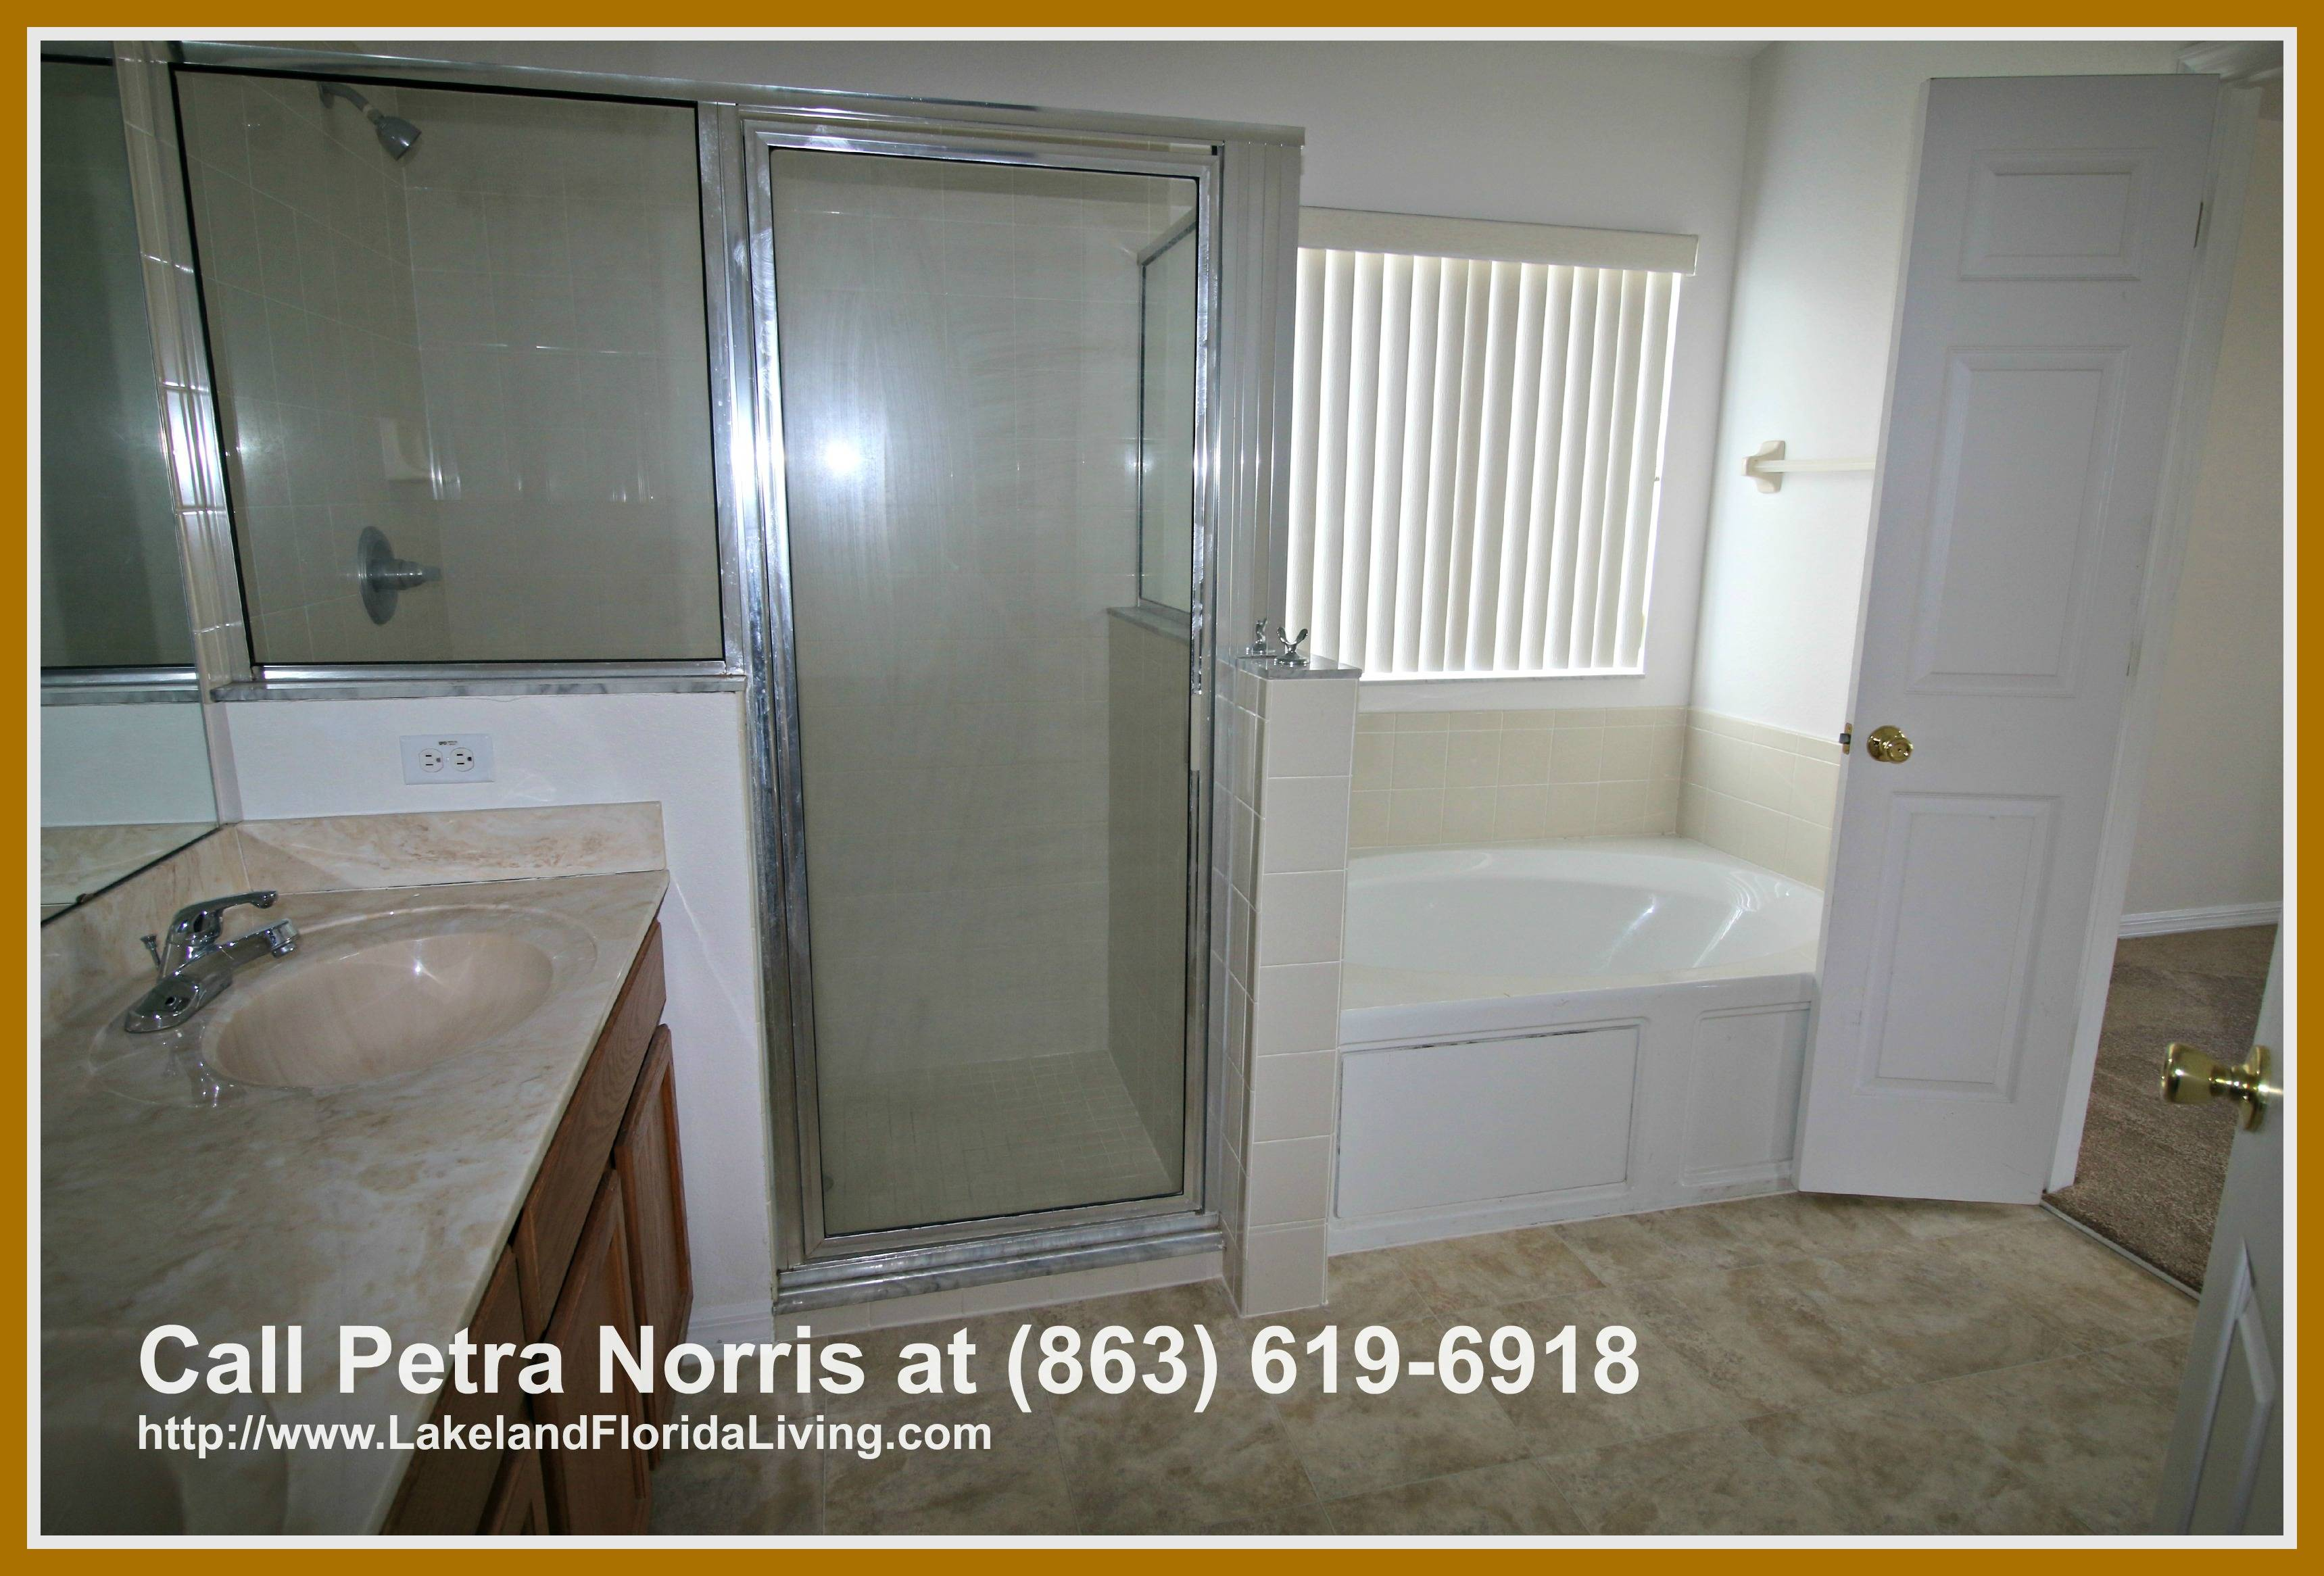 This 4 bedroom home for sale in Winter Haven FL boasts of 3 spotless full baths that are installed to give you quality personal time.